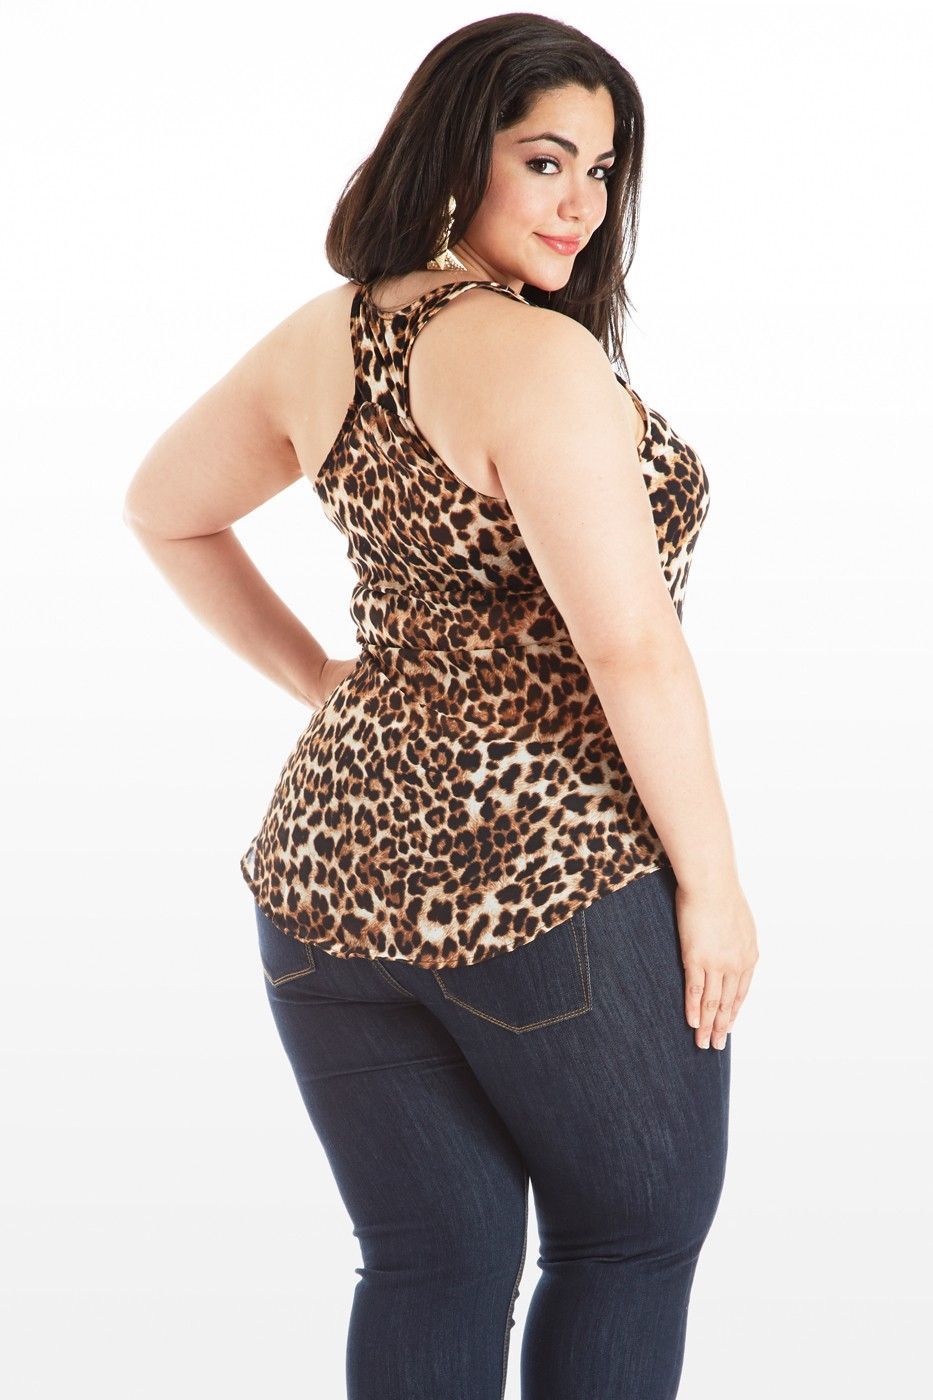 2abedd971d3d84 Plus Size Animal Print Tank Top Leopard Print  UNIQUE WOMENS FASHION ...